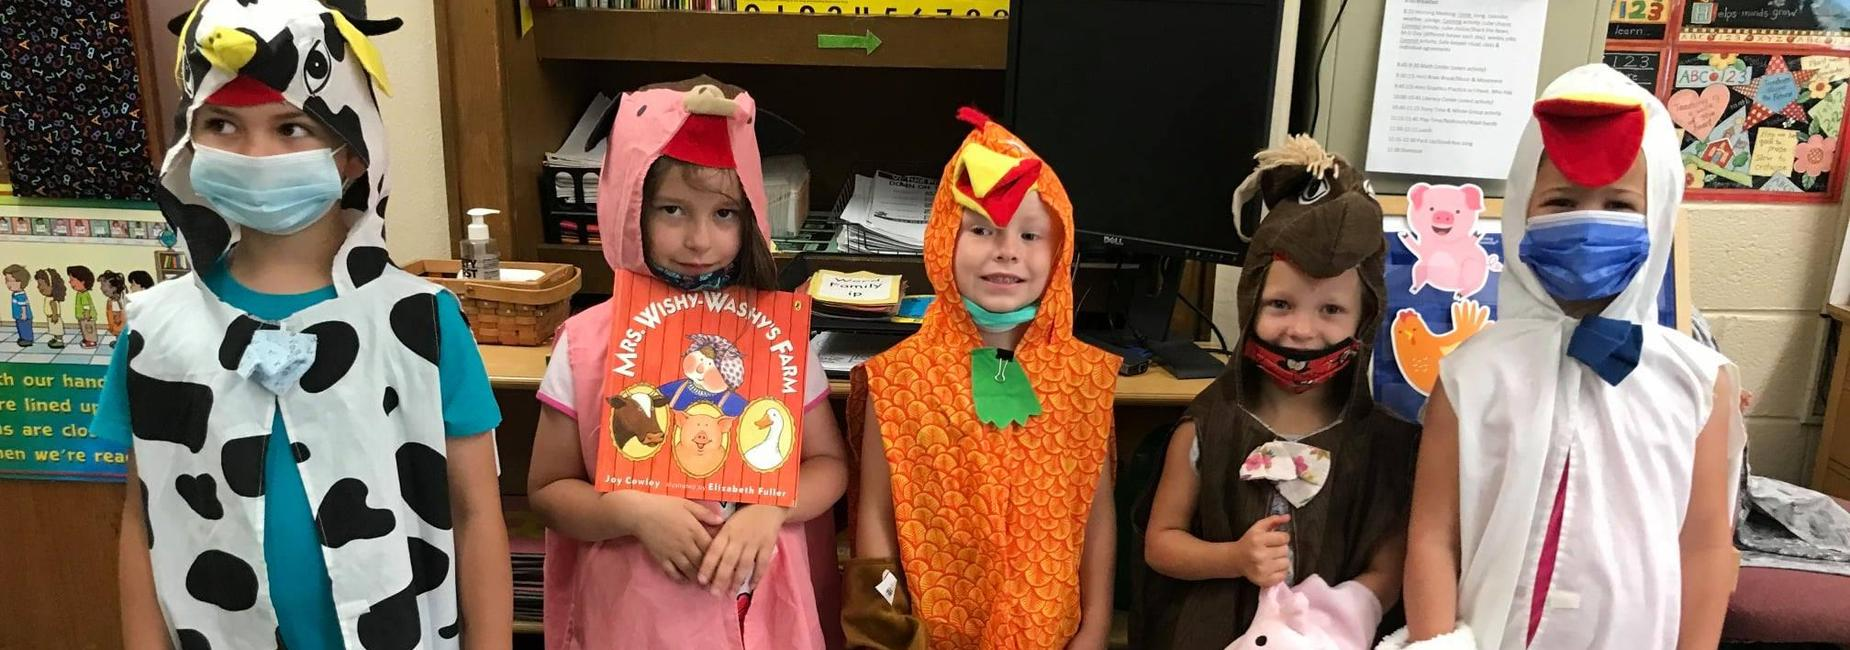 Sugar Grove Students dressed as animals from the book